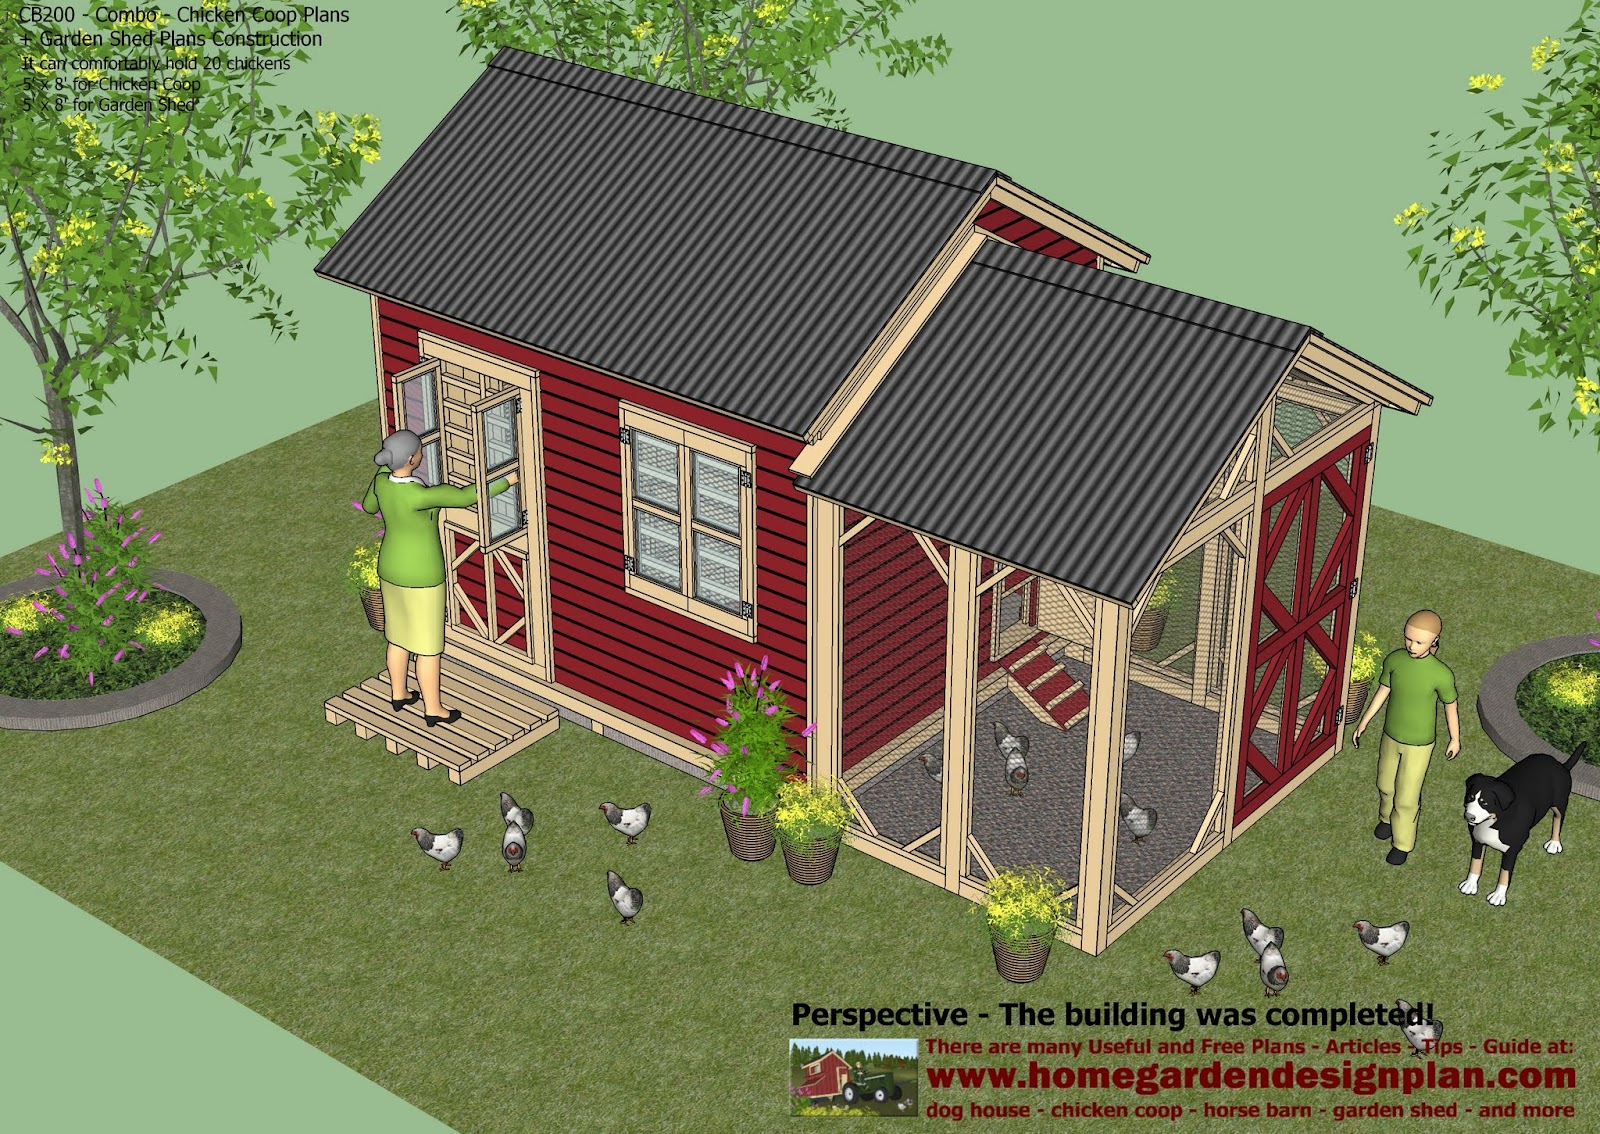 home garden plans: CB200 - Combo Plans - Chicken Coop Plans Construction + Garden Sheds ...